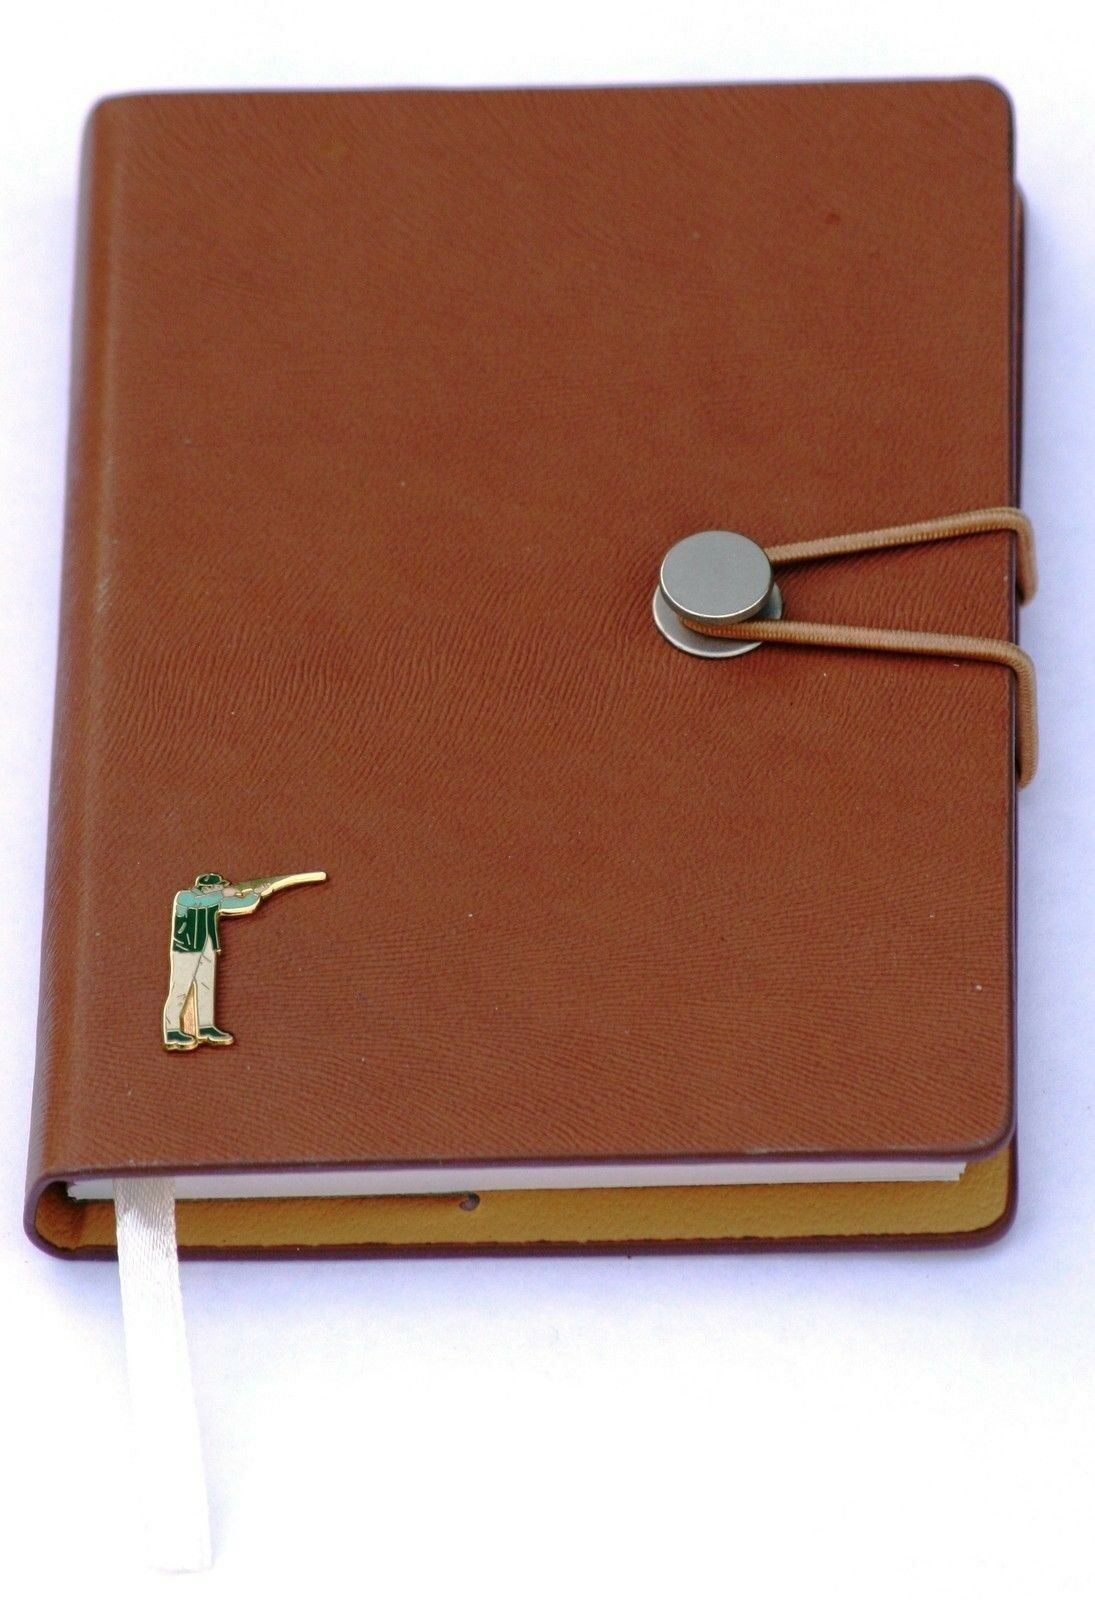 Clay Pigeon Shooter Notepad Jotter Notebook Record Ideal Gift A6